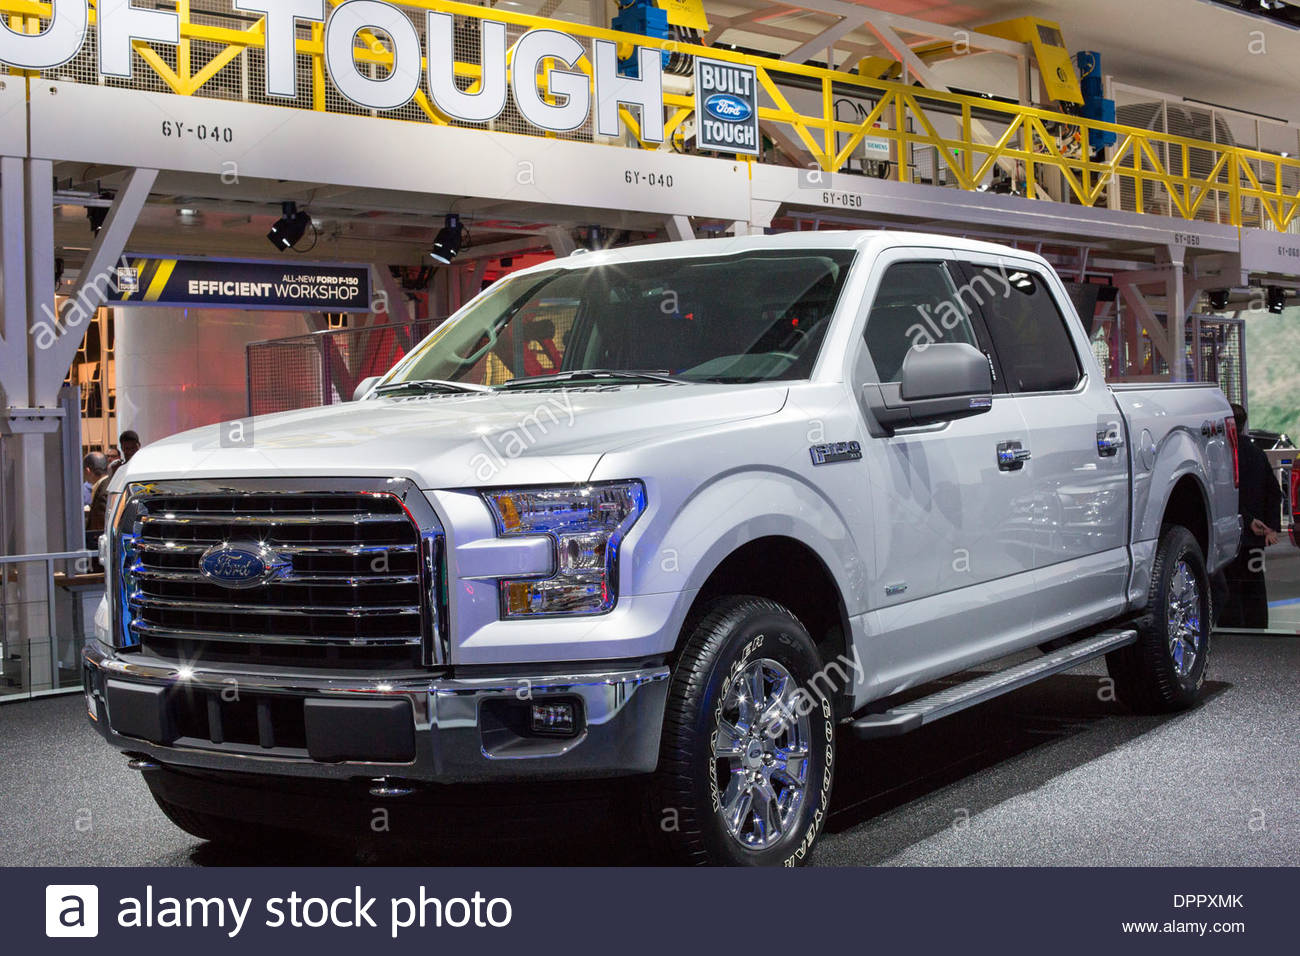 hight resolution of detroit michigan the ford f 150 4x4 pickup truck on display at the north american international auto show